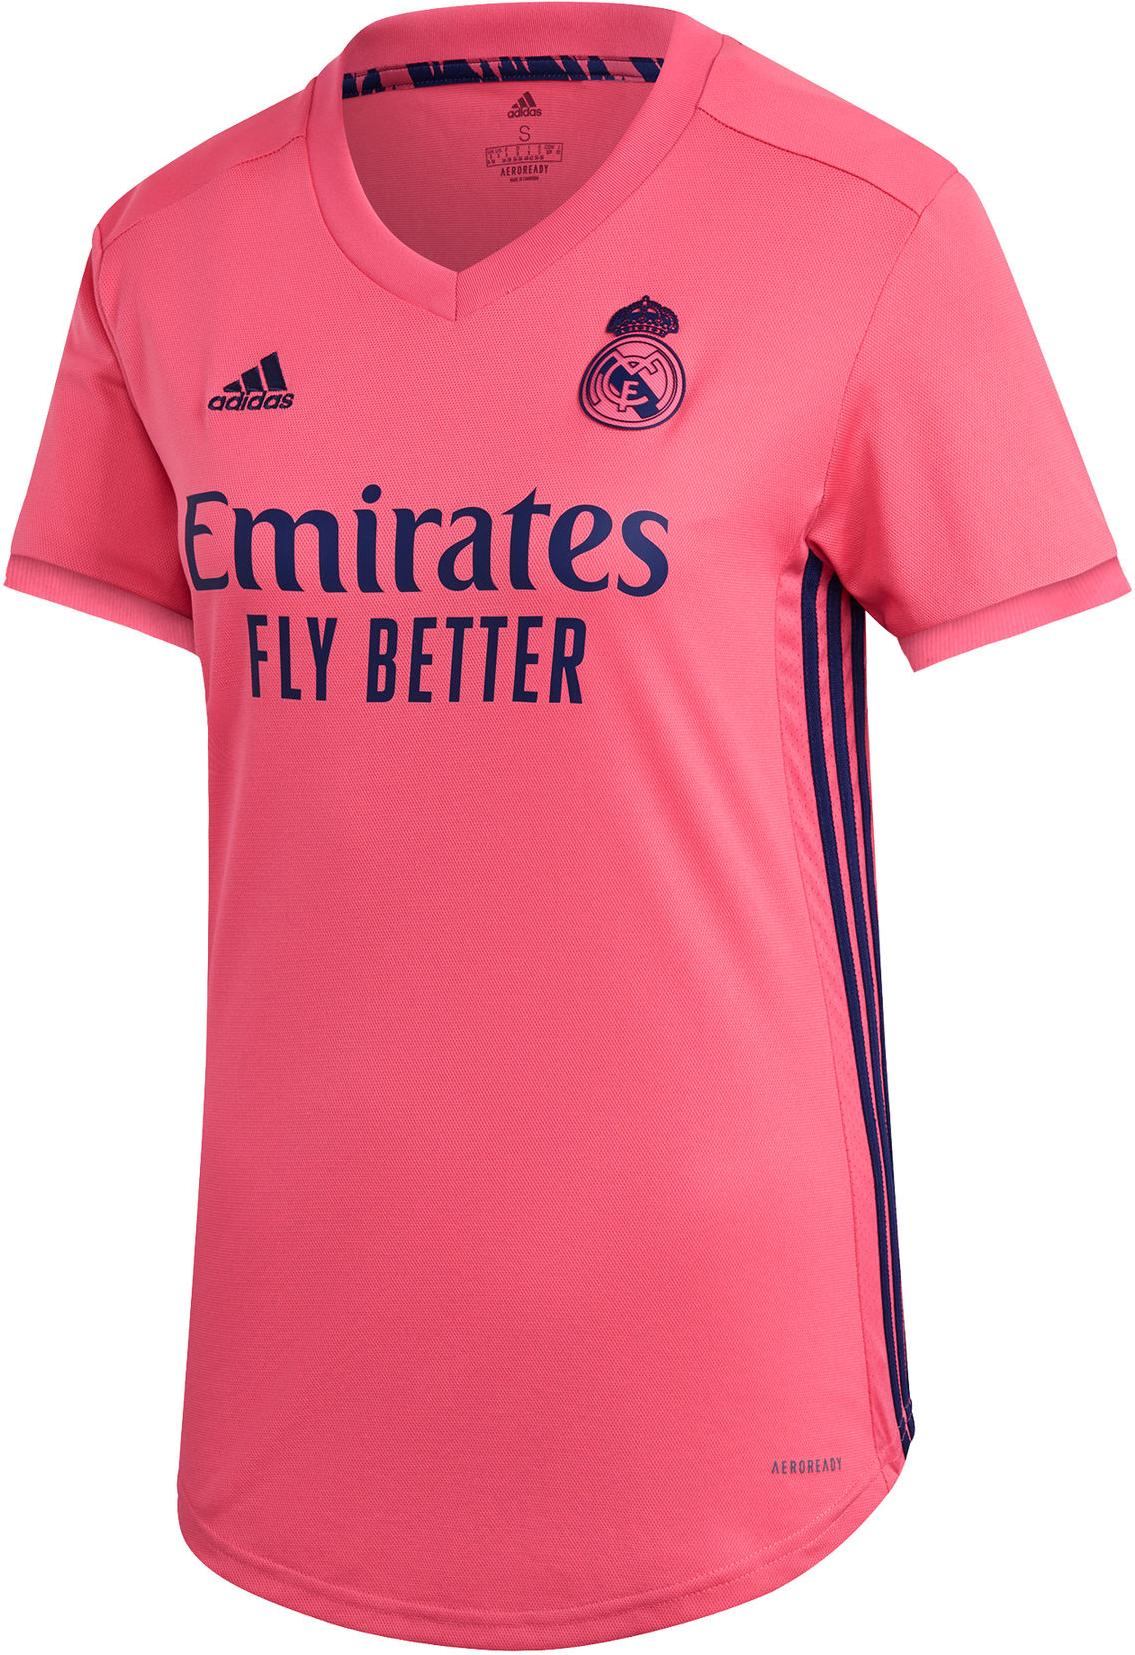 Dres adidas REAL MADRID AWAY JERSEY WOMEN 2020/21